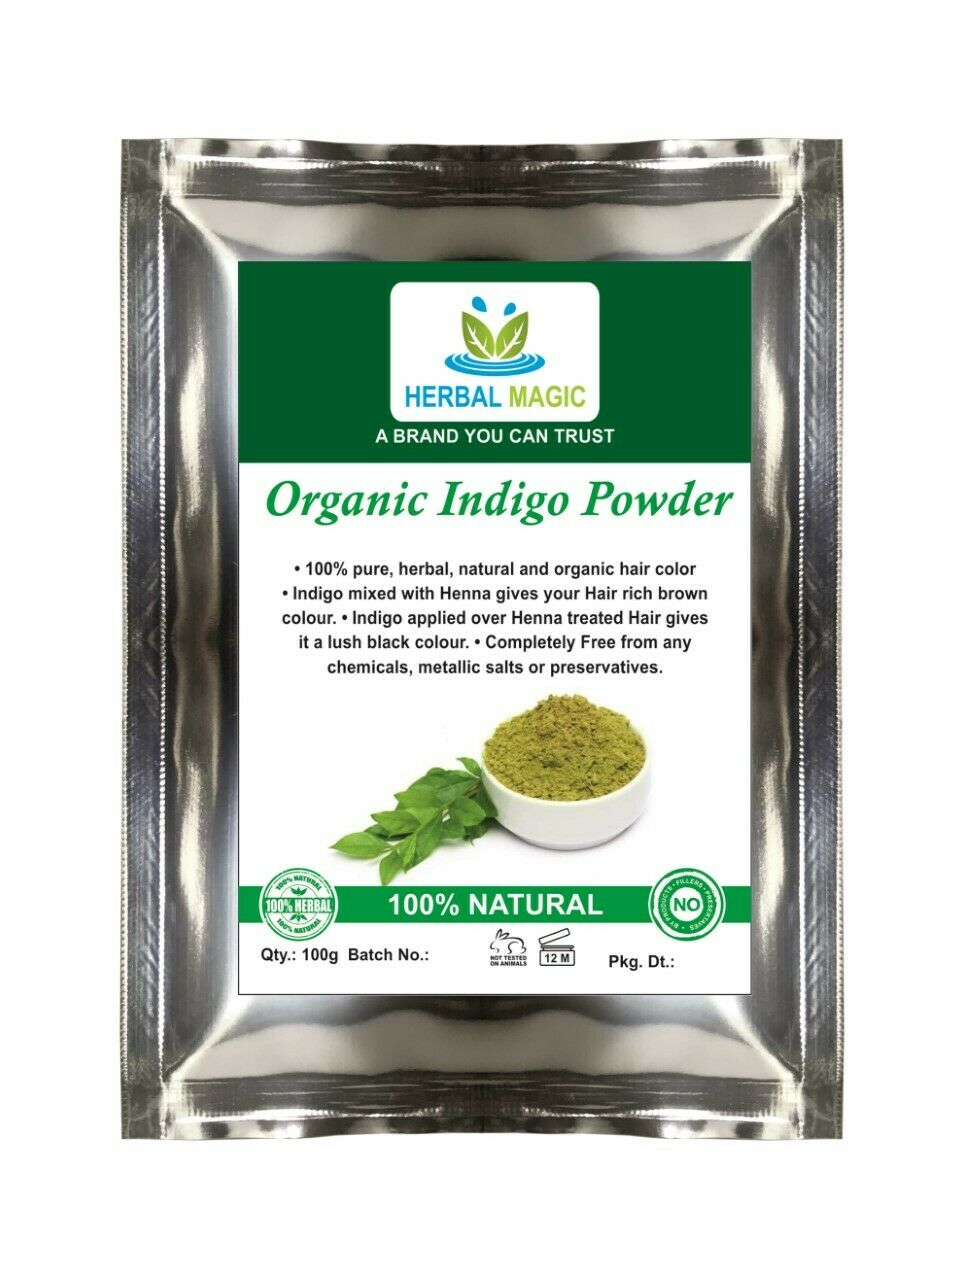 200g USDA Certified Organic Indigo Powder For Natural Hair Color/ Dye